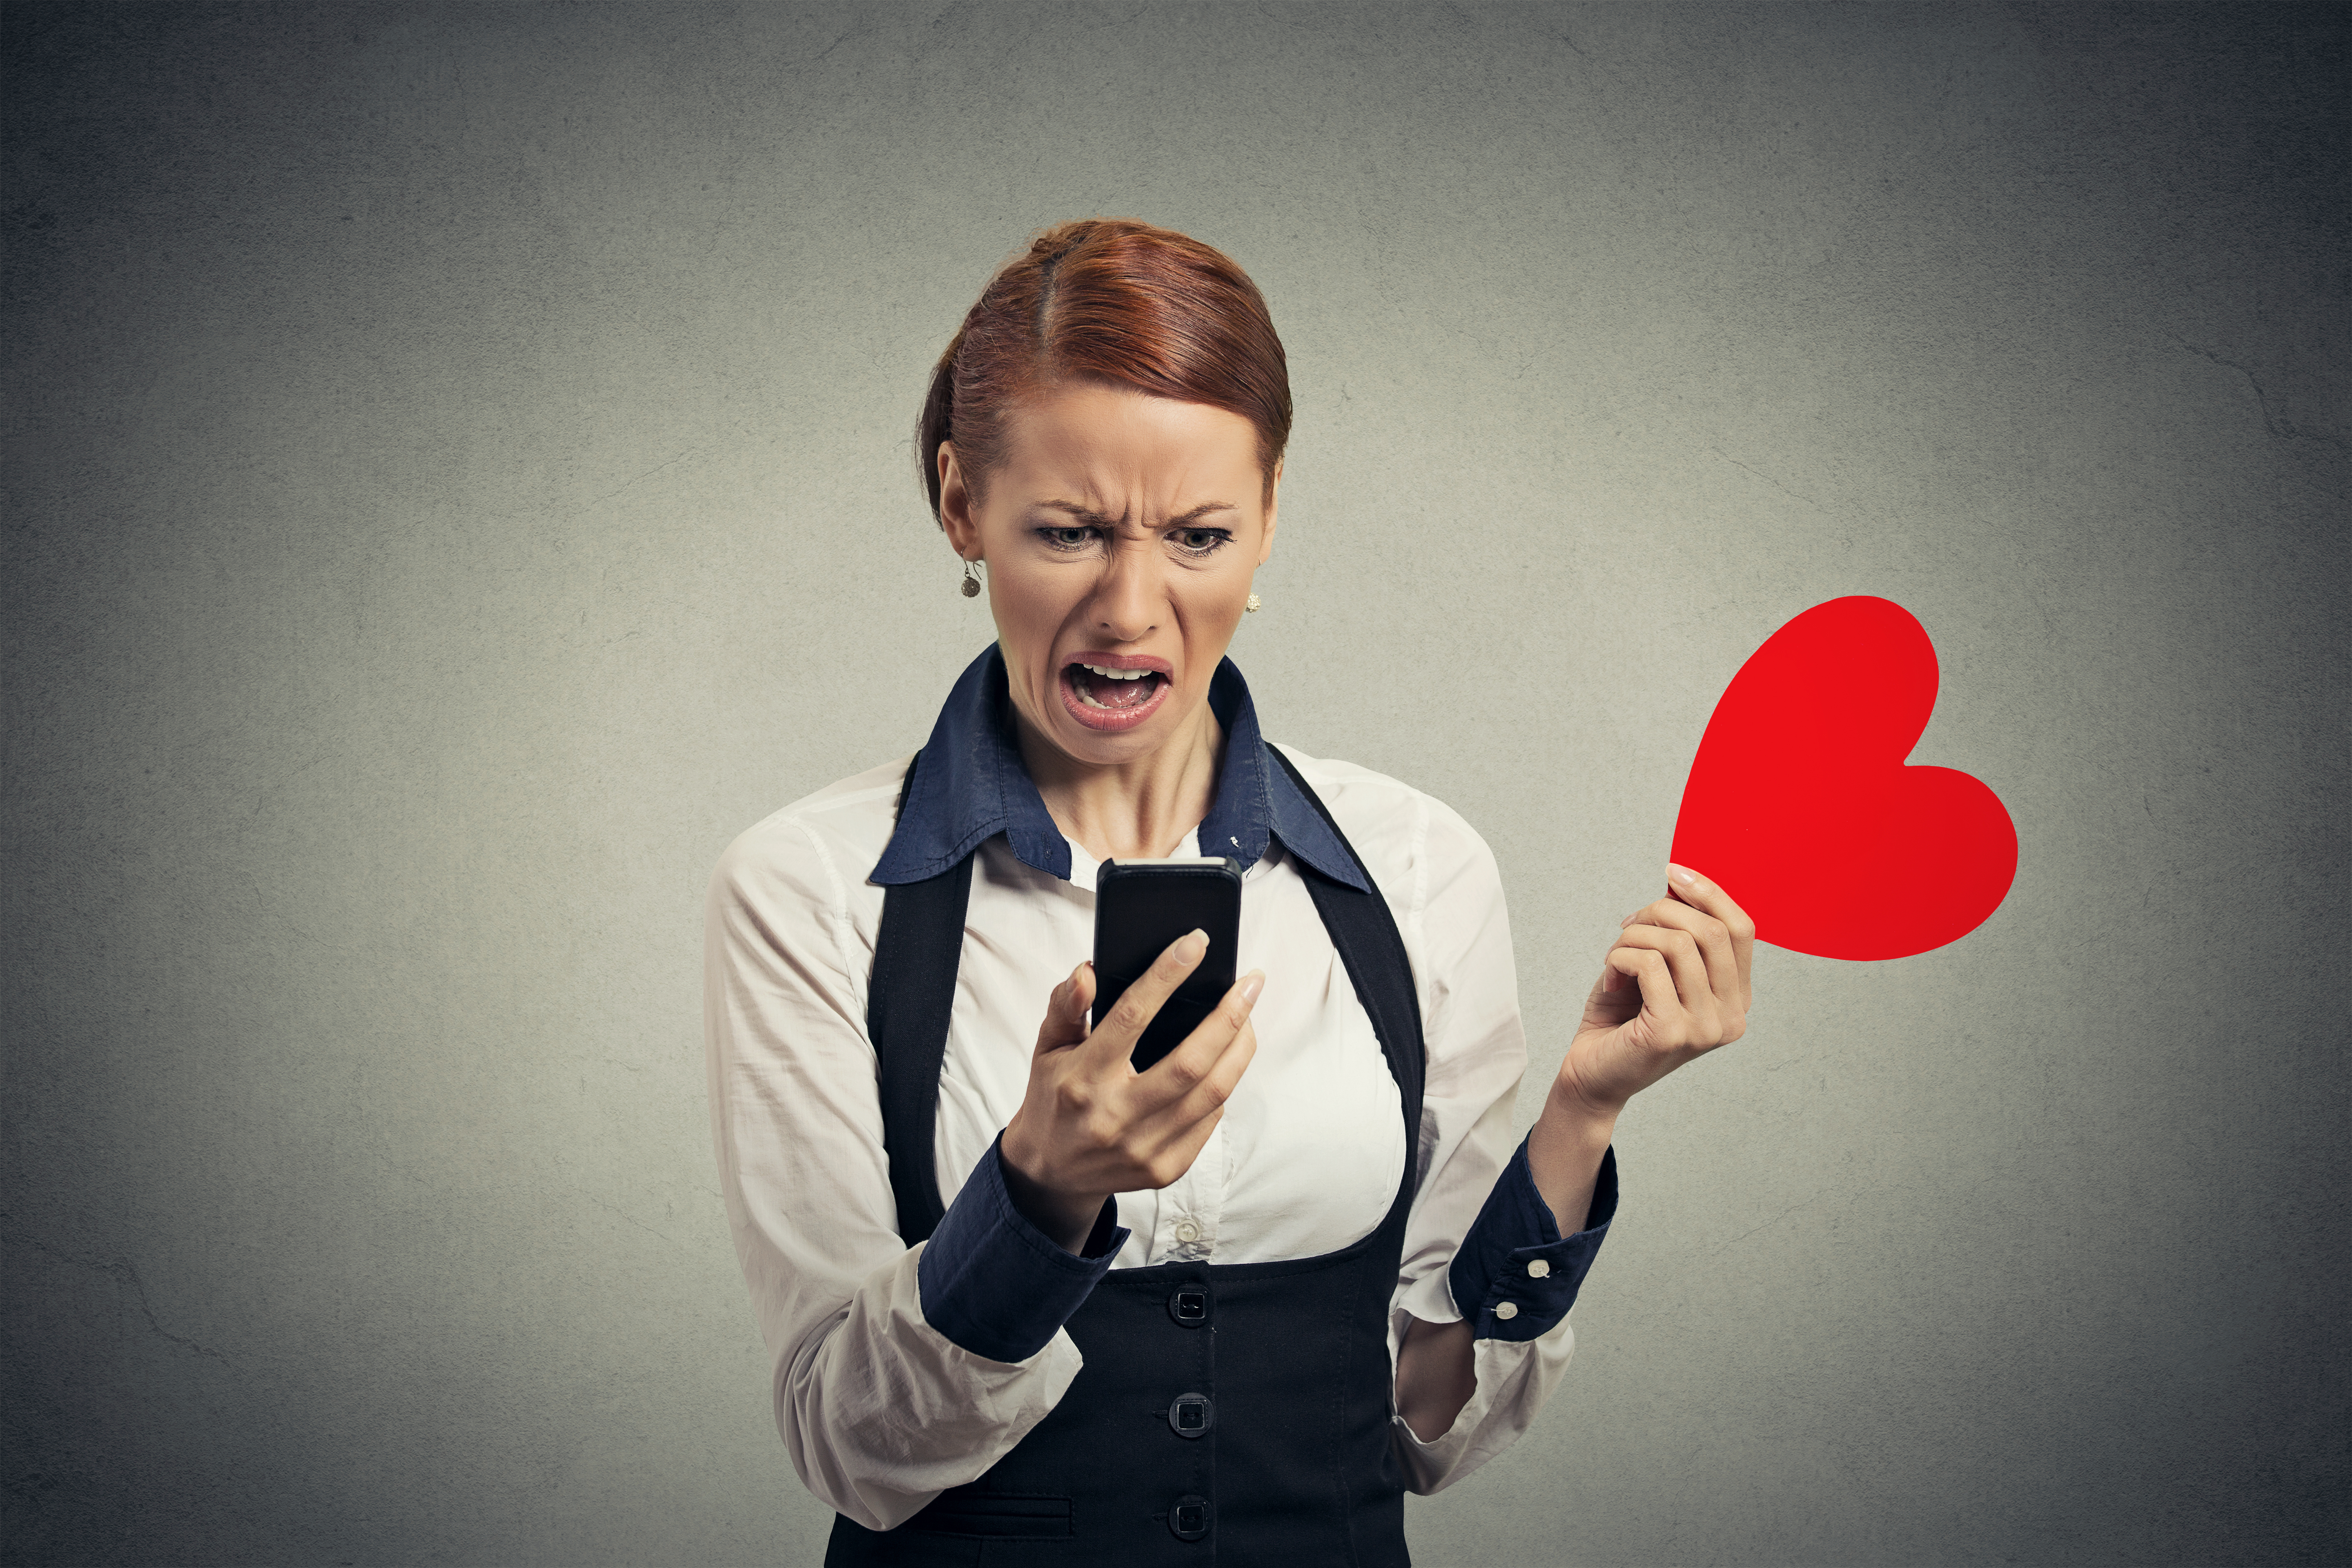 It's Not You, It's Me. I Swear. The Vicious Supplier Dating Game. 1